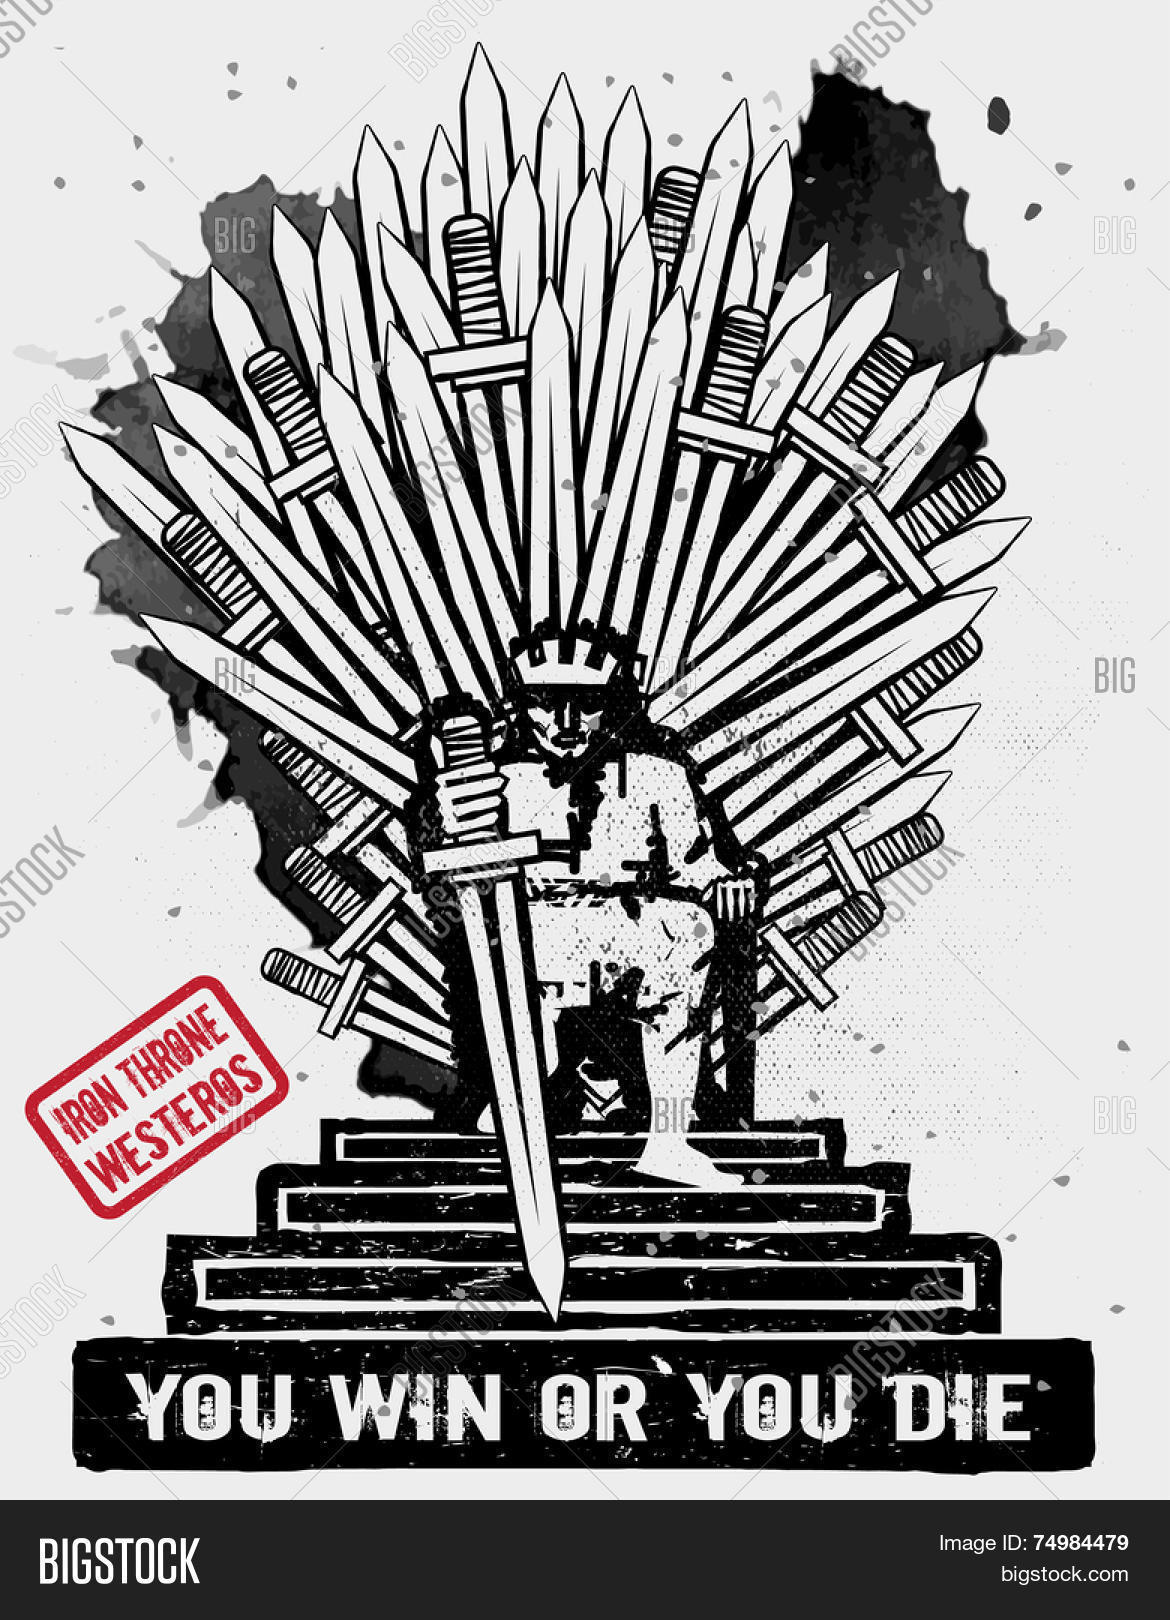 game of thrones images illustrations vectors free bigstock